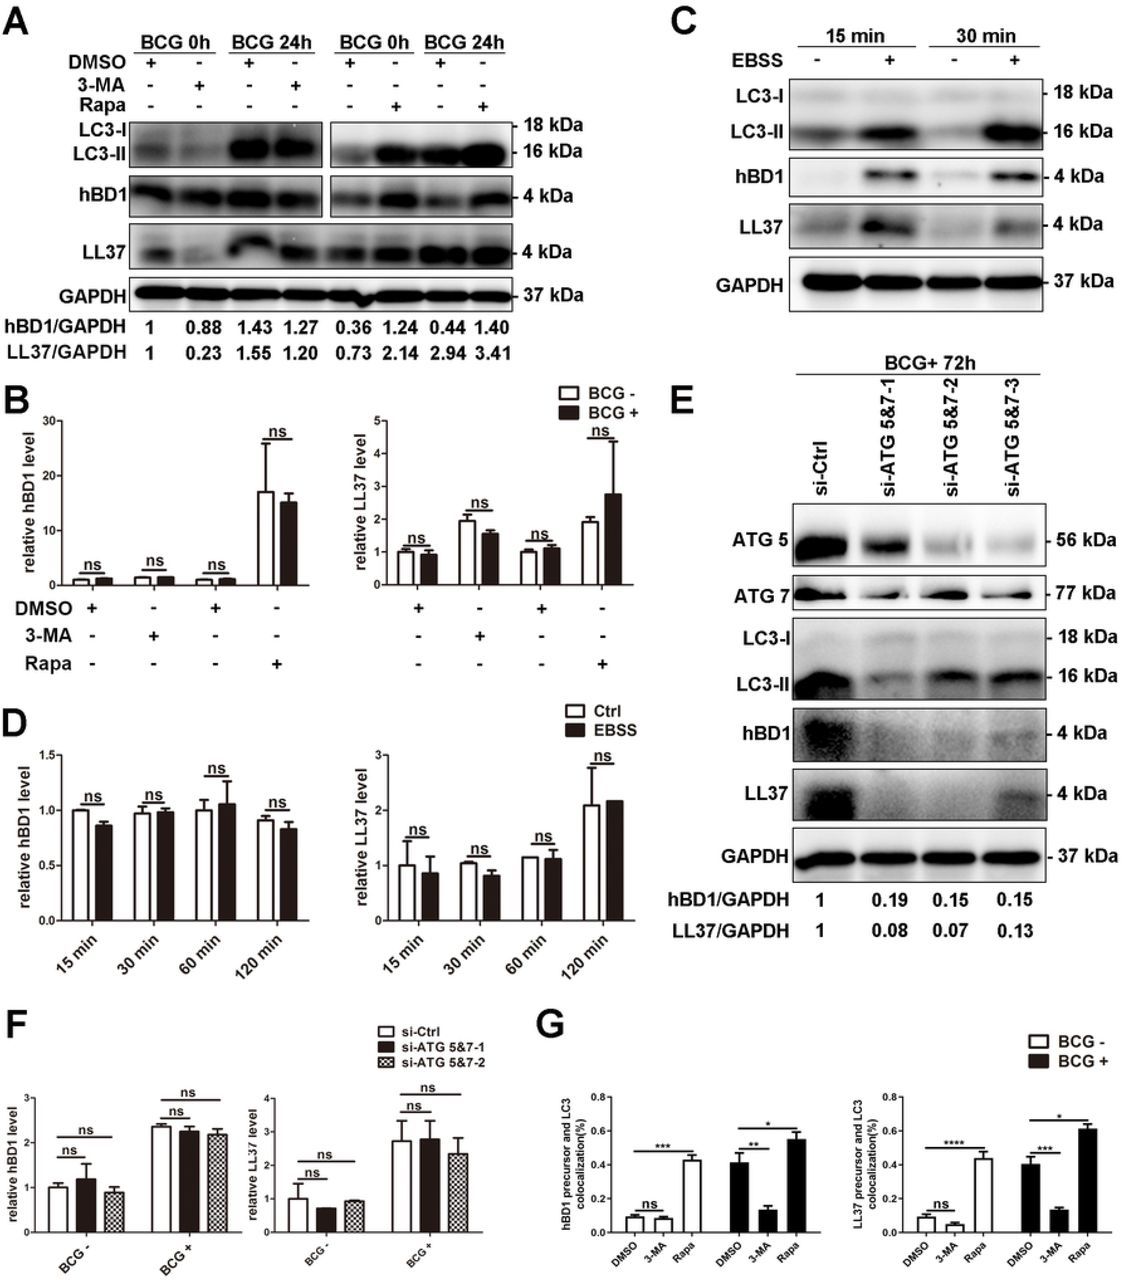 Autophagy influences the active peptide levels of hBD1 and LL37. (A) The autophagic level of A549 cells affected the active peptides level of hBD1 and LL37. A549 cells were pretreated with 4 μM rapamycin for 6 h and 5 mM 3-MA for 2 h and then infected with BCG for 24 h. The active peptide levels of hBD1 and LL37 were evaluated by western blotting. (B) The autophagic level of A549 cells did not affect the mRNA level of hBD1 and LL37. A549 cells were pretreated and infected with BCG as described above. The mRNA levels of hBD1 and LL37 were evaluated using real-time PCR. (C D) Starvation-induced autophagy promoted the production of active hBD1 and LL37. A549 cells were cultured with EBSS culture medium at various time points. The expression of hBD1 and LL37 was detected by western blotting and real-time PCR. (E F) Silencing ATG 5 and 7 disturbed the production of active hBD1 and LL37. A549 cells were transfected with 100 nM si-control or siRNA for ATG 5 and 7 for 72 h and infected with BCG. The expression of hBD1 and LL37 was detected by western blotting and real-time PCR. (G) The autophagic level of A549 cells affected the co-localization level of hBD1/LL37 precursor and autophagosomes. A549 cells stably expressing green fluorescent protein (GFP)– tagged LC3 (GFP-LC3) and mCherry Fluorescence Protein (mCherry)-tagged hBD1 or LL37 precursor (hBD1/LL37 precursor-mCherry) were pretreated with rapamycin and 3-MA and infected with BCG as described above. GFP-LC3 puncta ( > 1 μm) were observed and counted under confocal microscopy. Co-localization of hBD1/LL37 precursor and autophagosomes was detected by confocal microscopy. Data are expressed as the means ± standard deviation (s.d.) * p